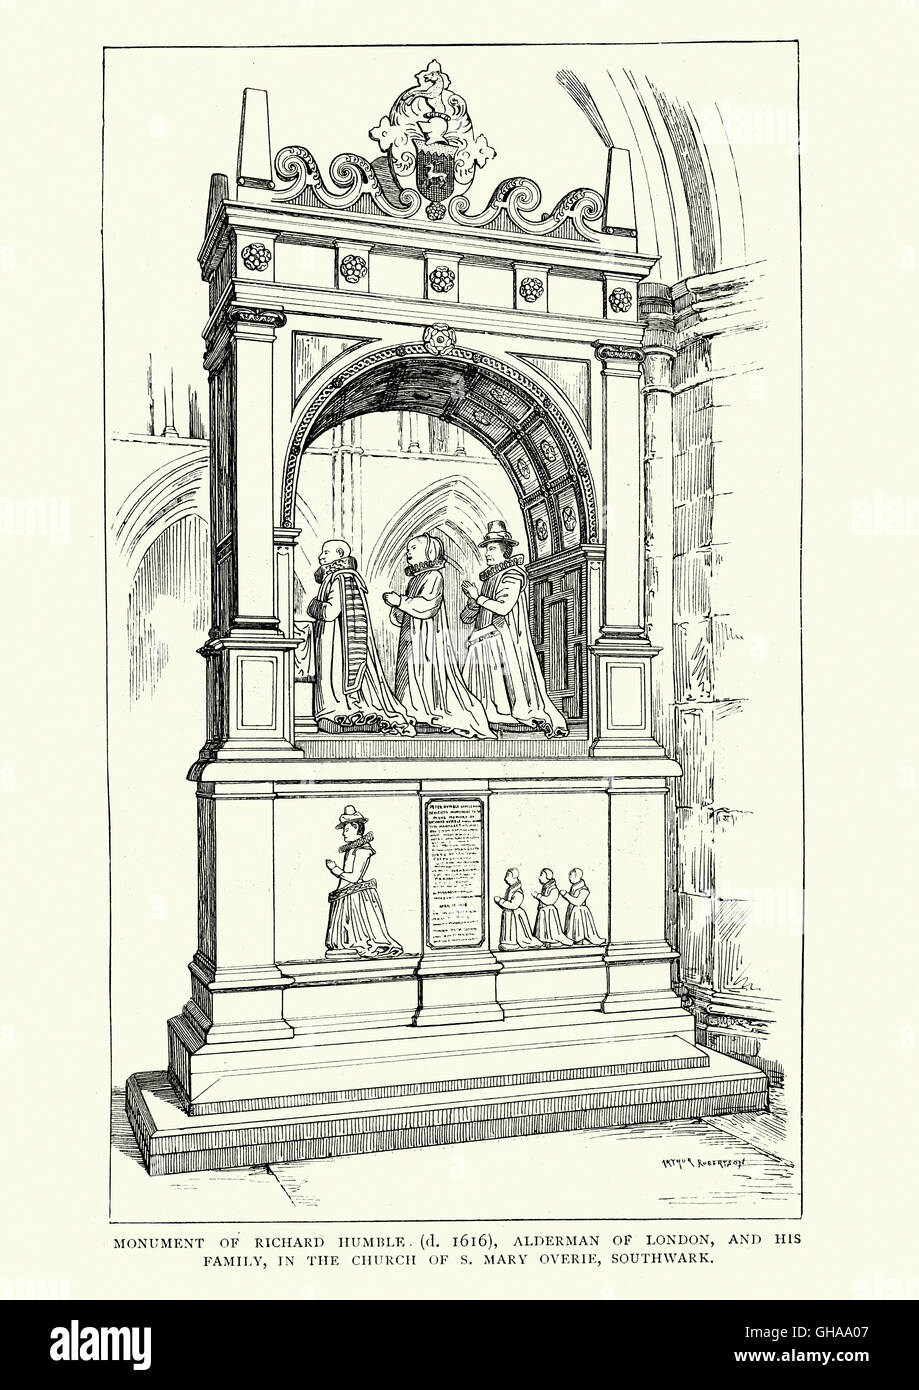 Monument of Richard Humble (d. 1616), Alderman of London, and his family, Church of St Mary Overie, Southwark - Stock Image